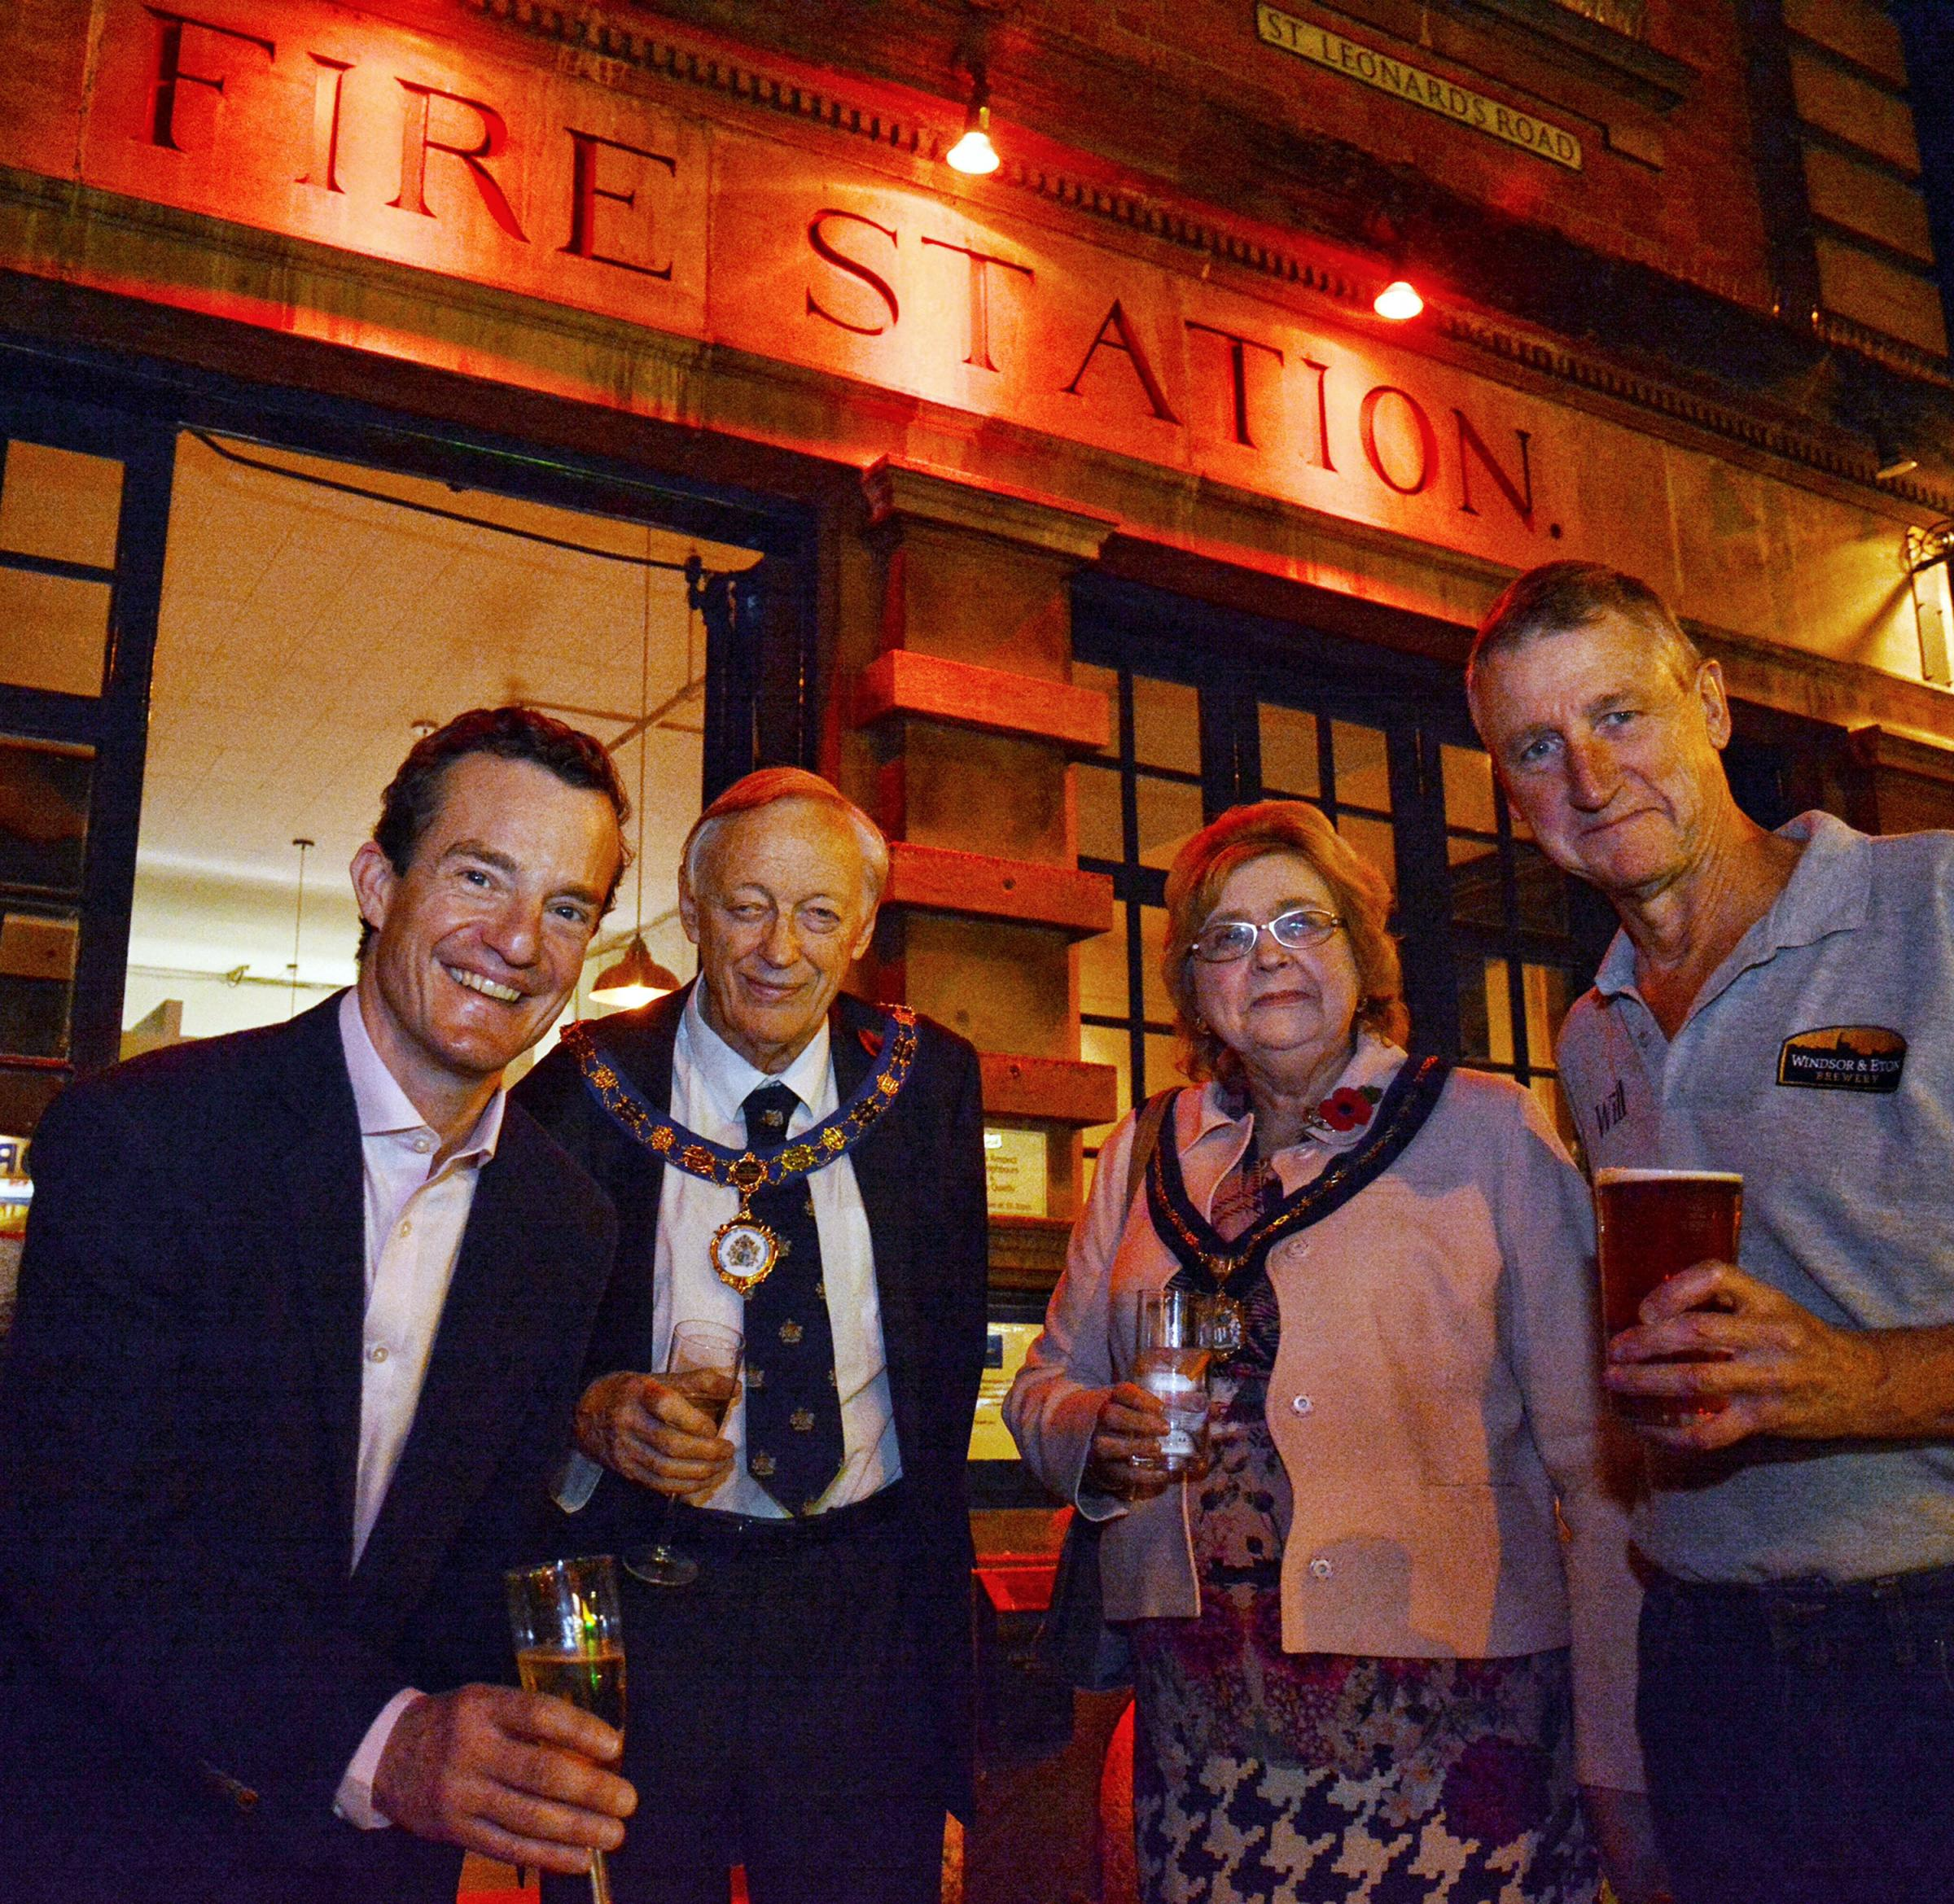 From left, Martin Denny, Mayor and Mayoress John and Margaret Lenton with the brewery's Will Calvert at the opening of the Old Court